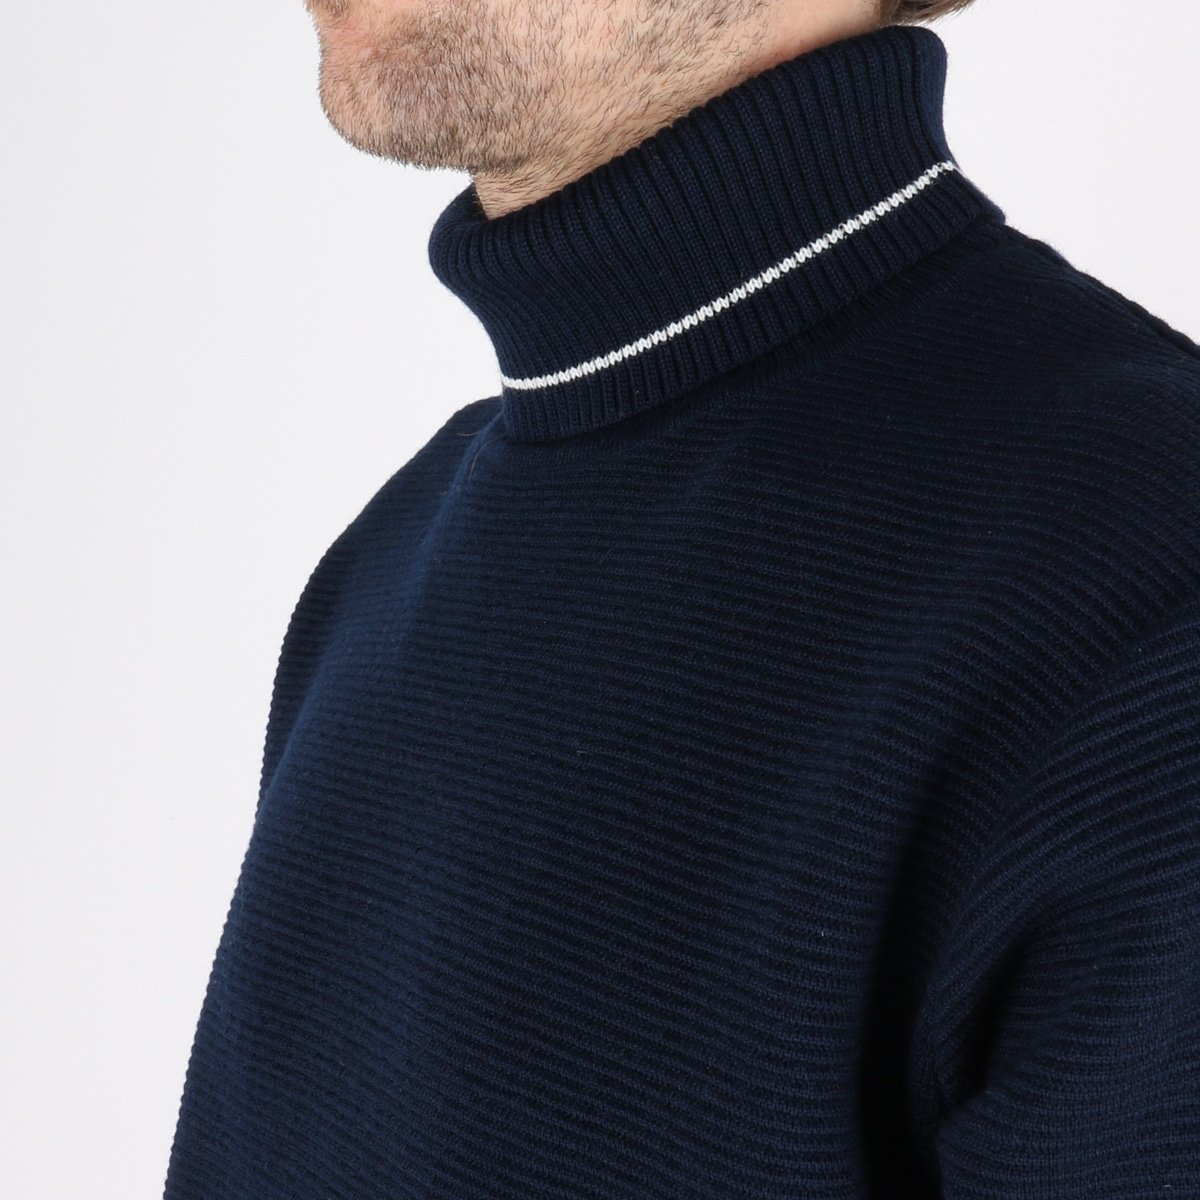 woodbird_craving otto turtle knit_navy_3_4